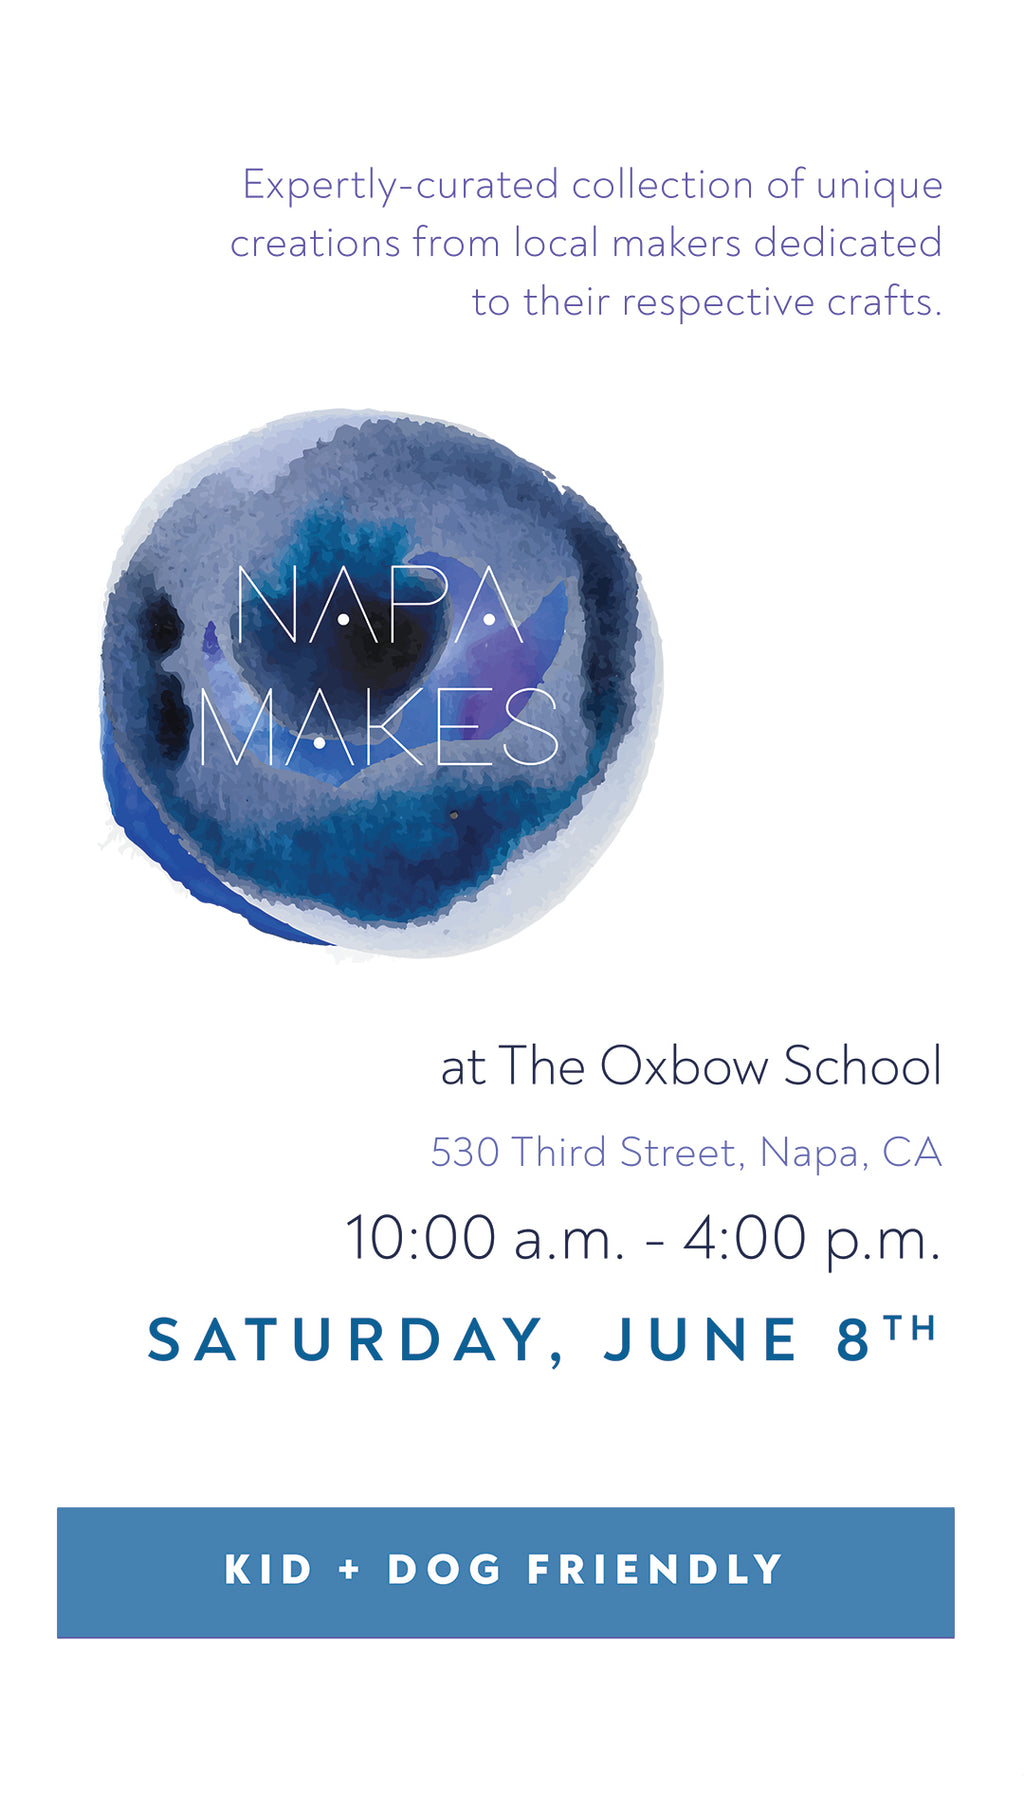 6/8/2019 10:00AM-4:00PM | MIRACLE PLUM AT NAPA MAKES